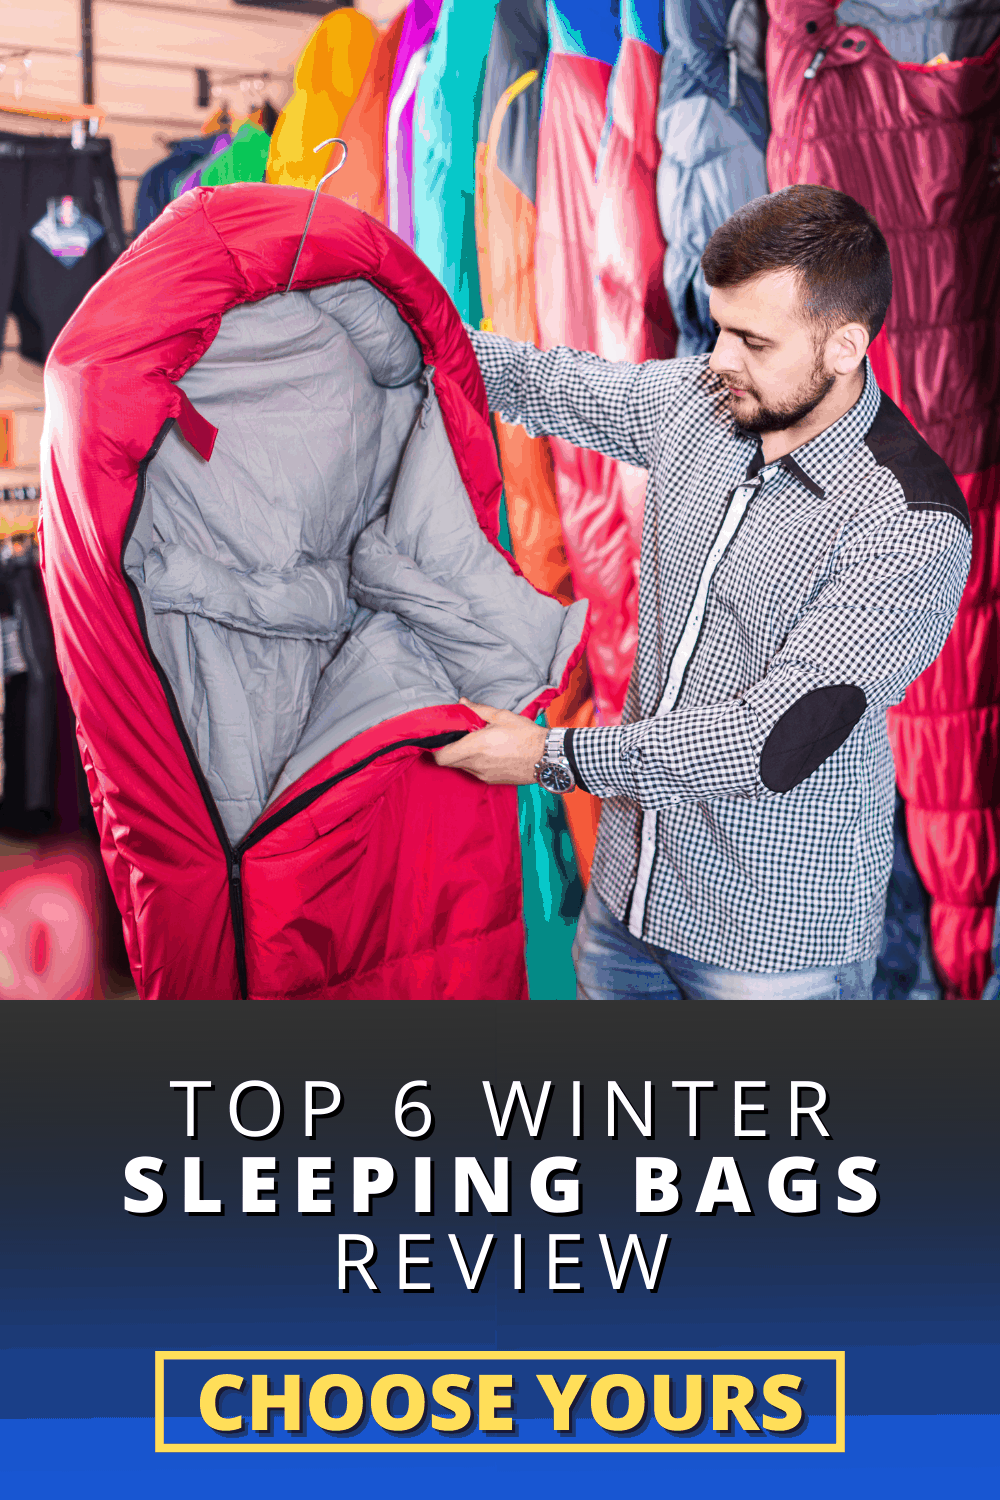 Top 6 Winter Sleeping Bags